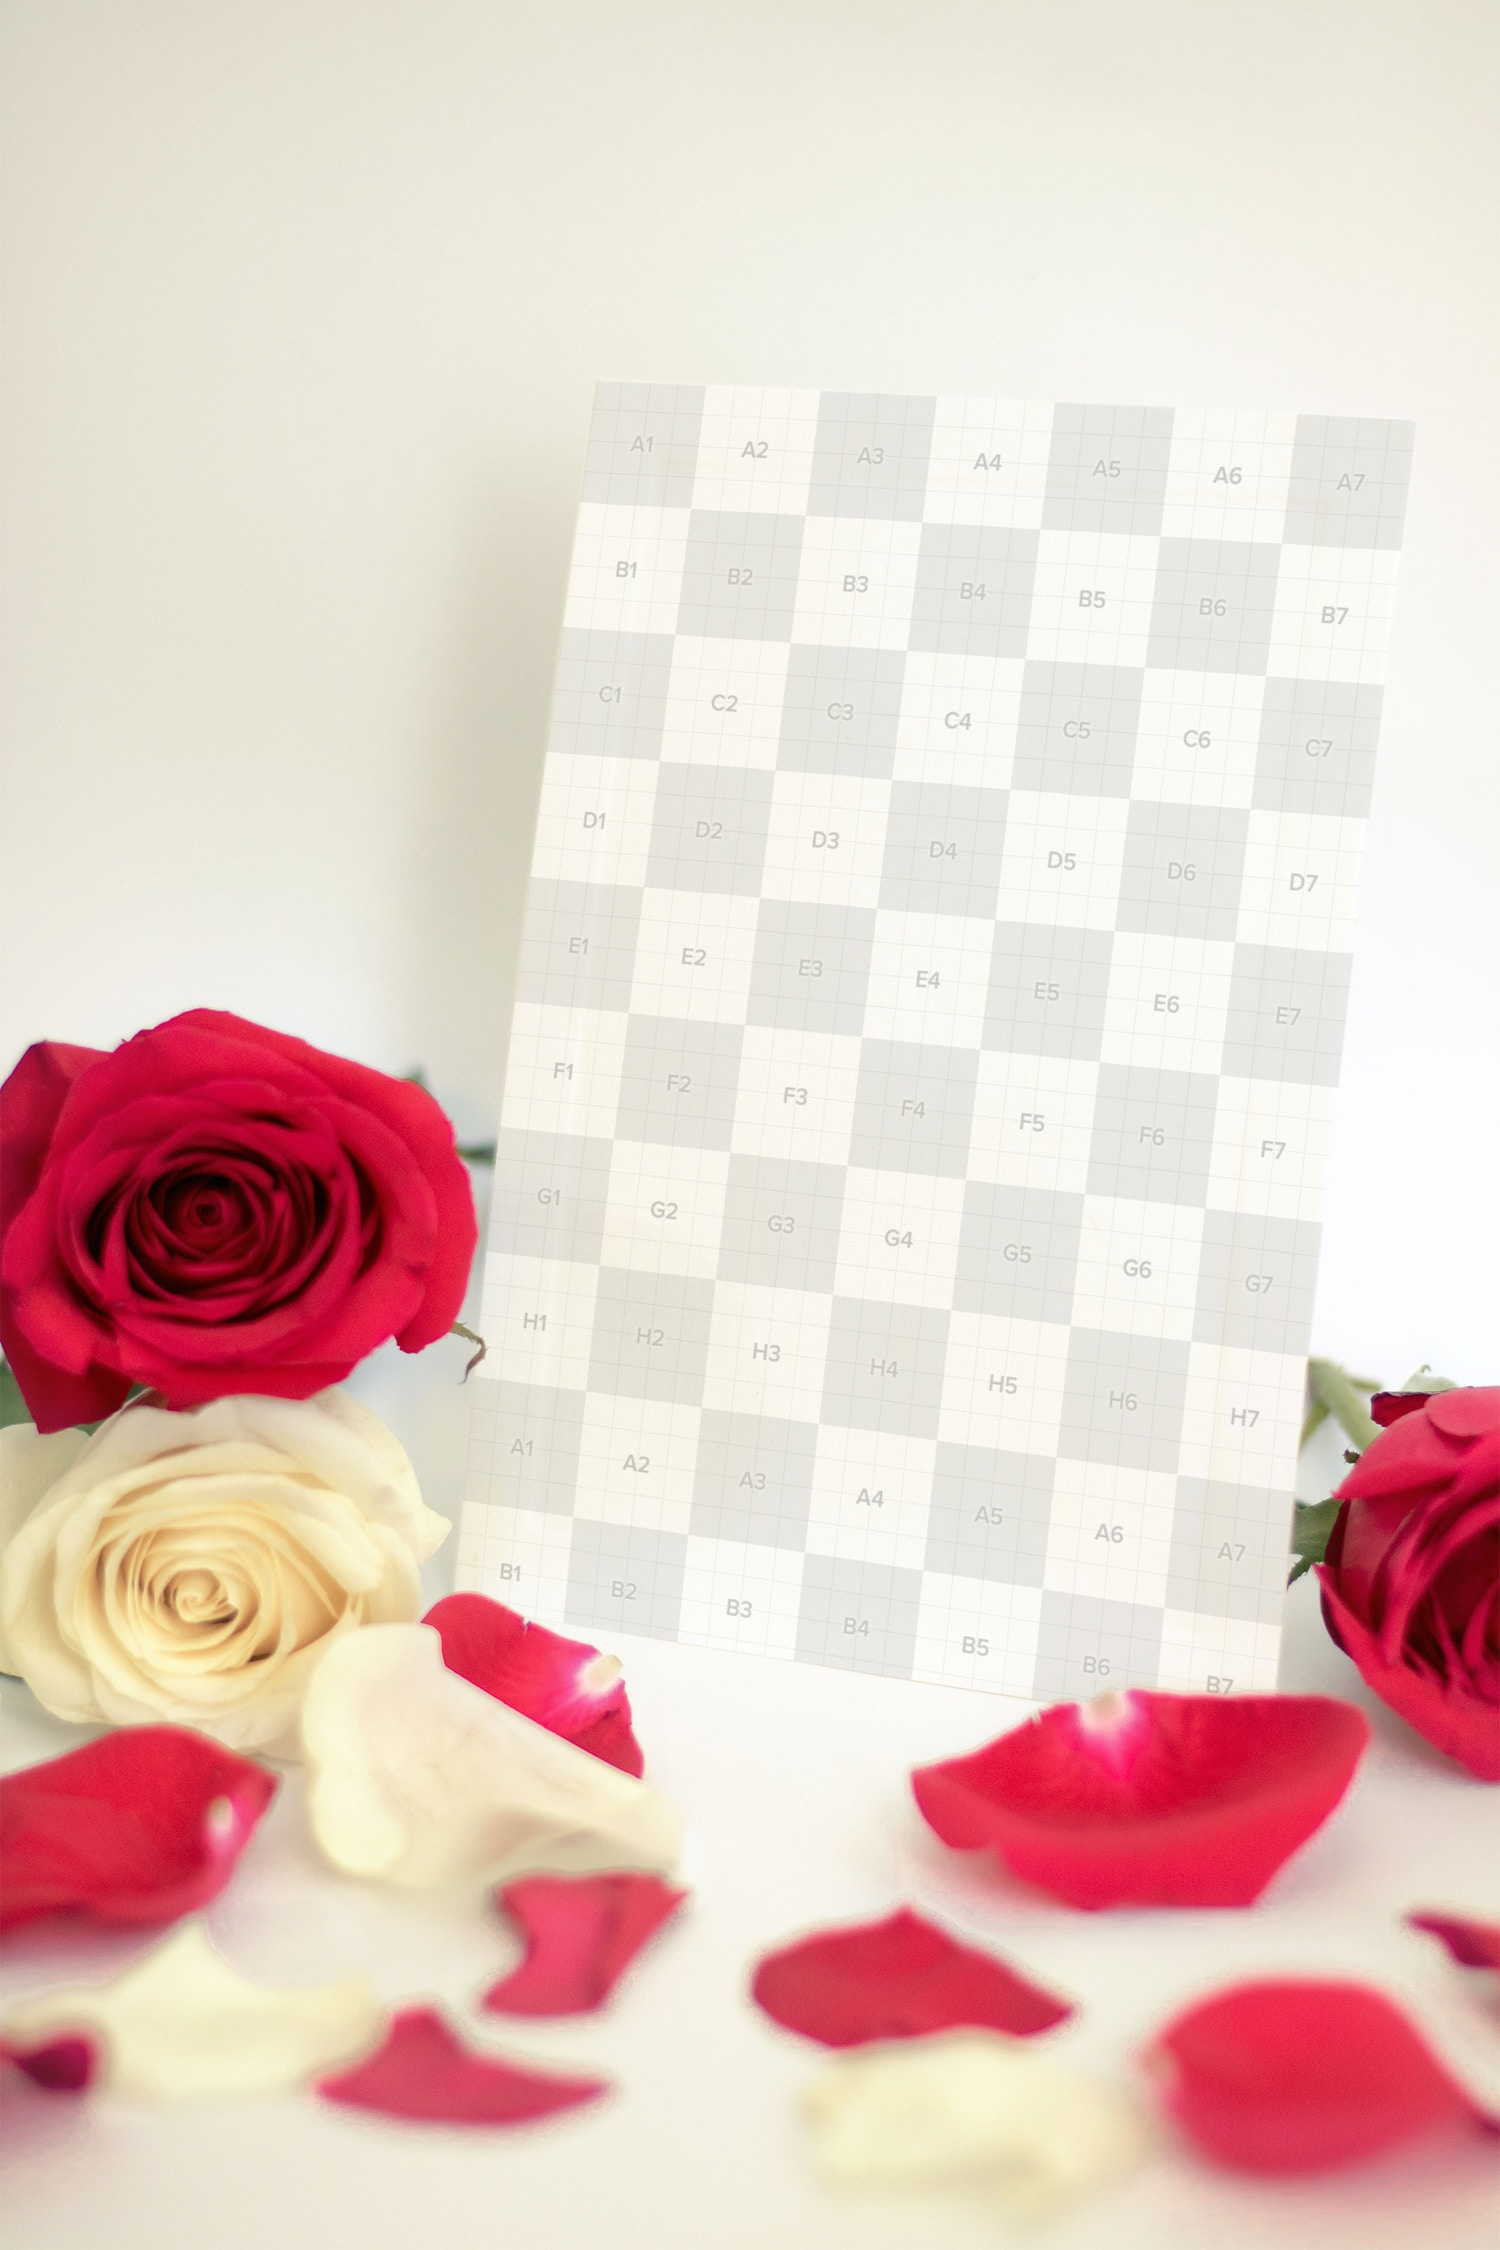 Valentine Card Mockup 06 (2) by Eru  on Original Mockups